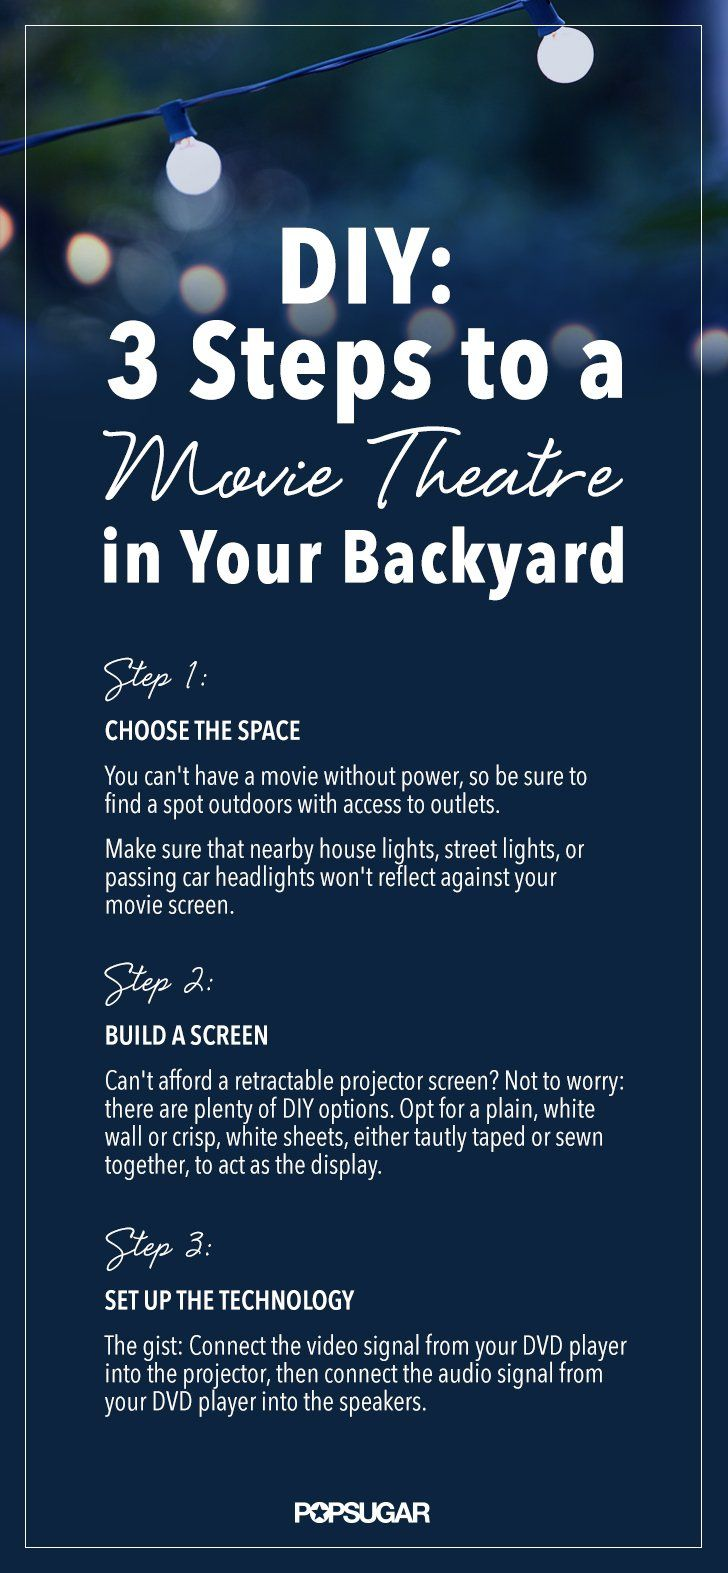 DIY Your Own Backyard Movie Theater in 3 Steps